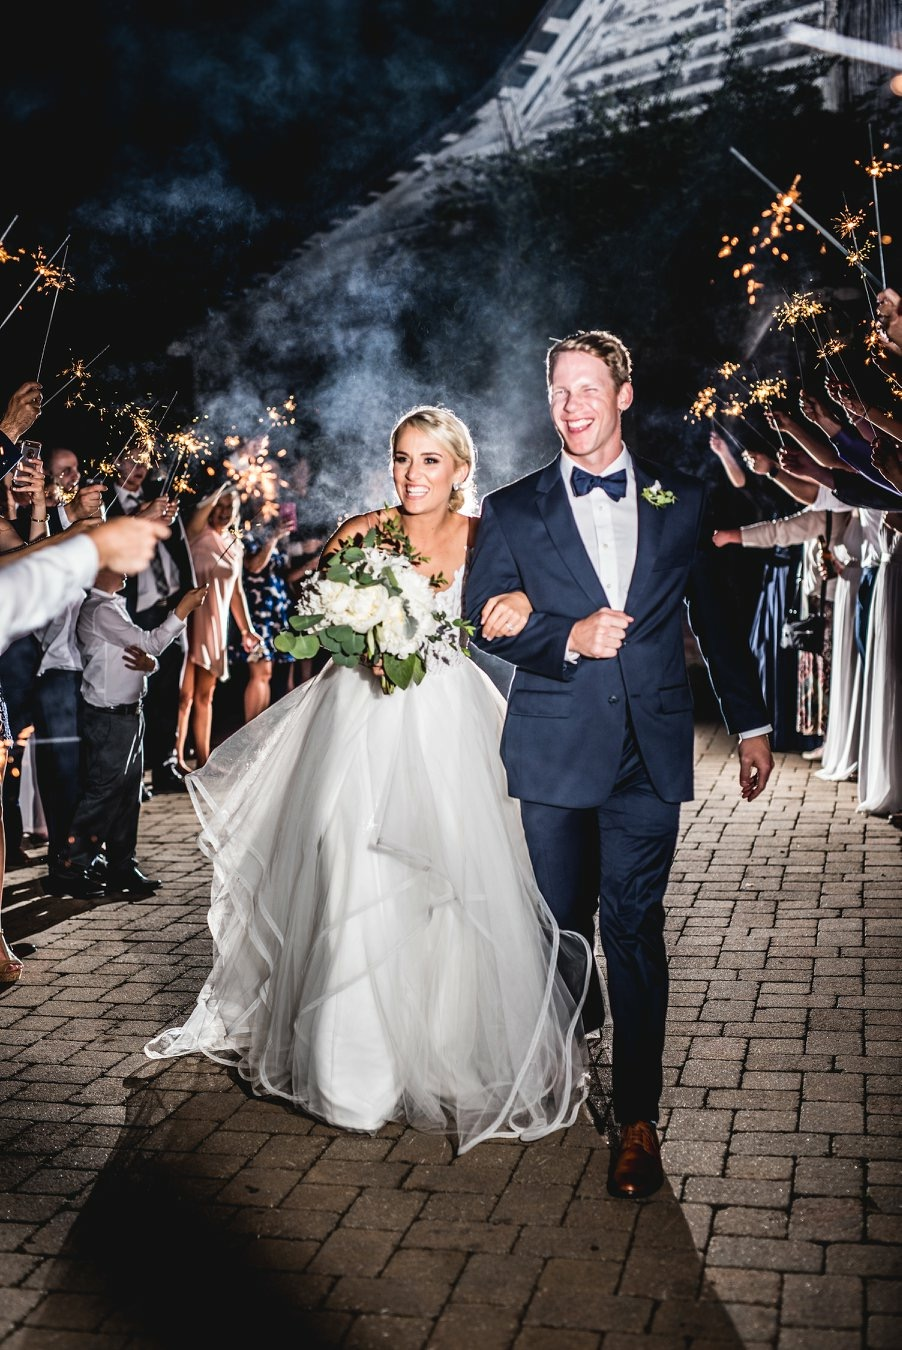 savannah-bridal-shop-ivory-and-beau-bride-bridget-pepper-by-blush-by-hayley-paige-montana-burkett-photography-savannah-wedding-gown-savannah-wedding-dress-7.jpeg